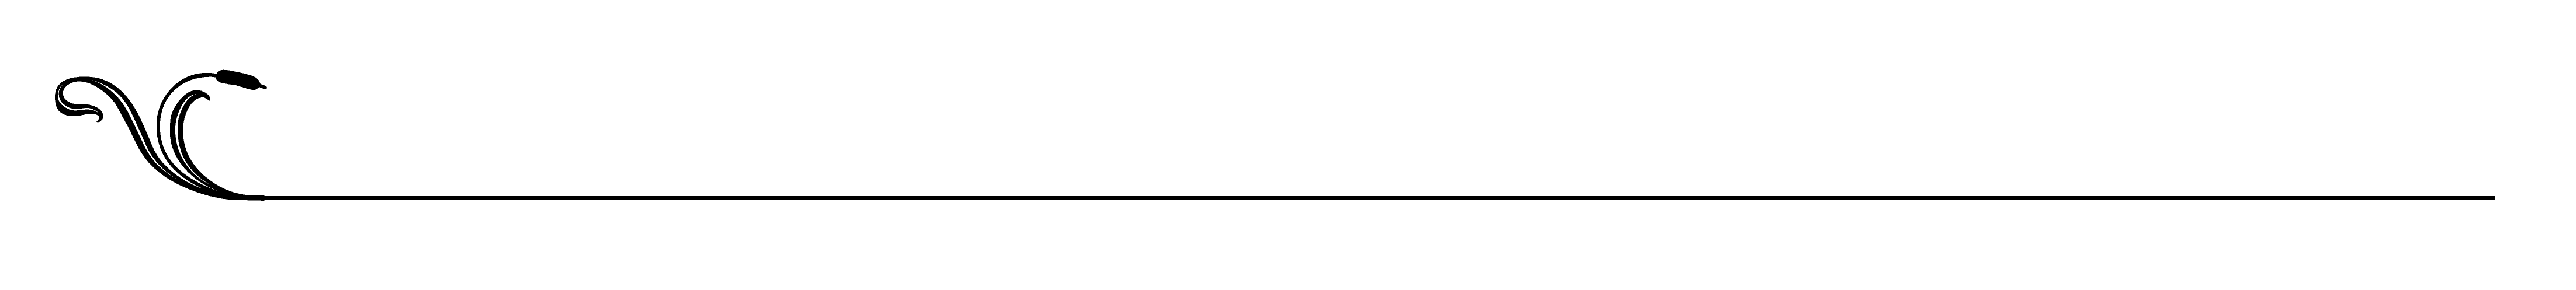 Index of familytree ftm. Swirl underline png black and white